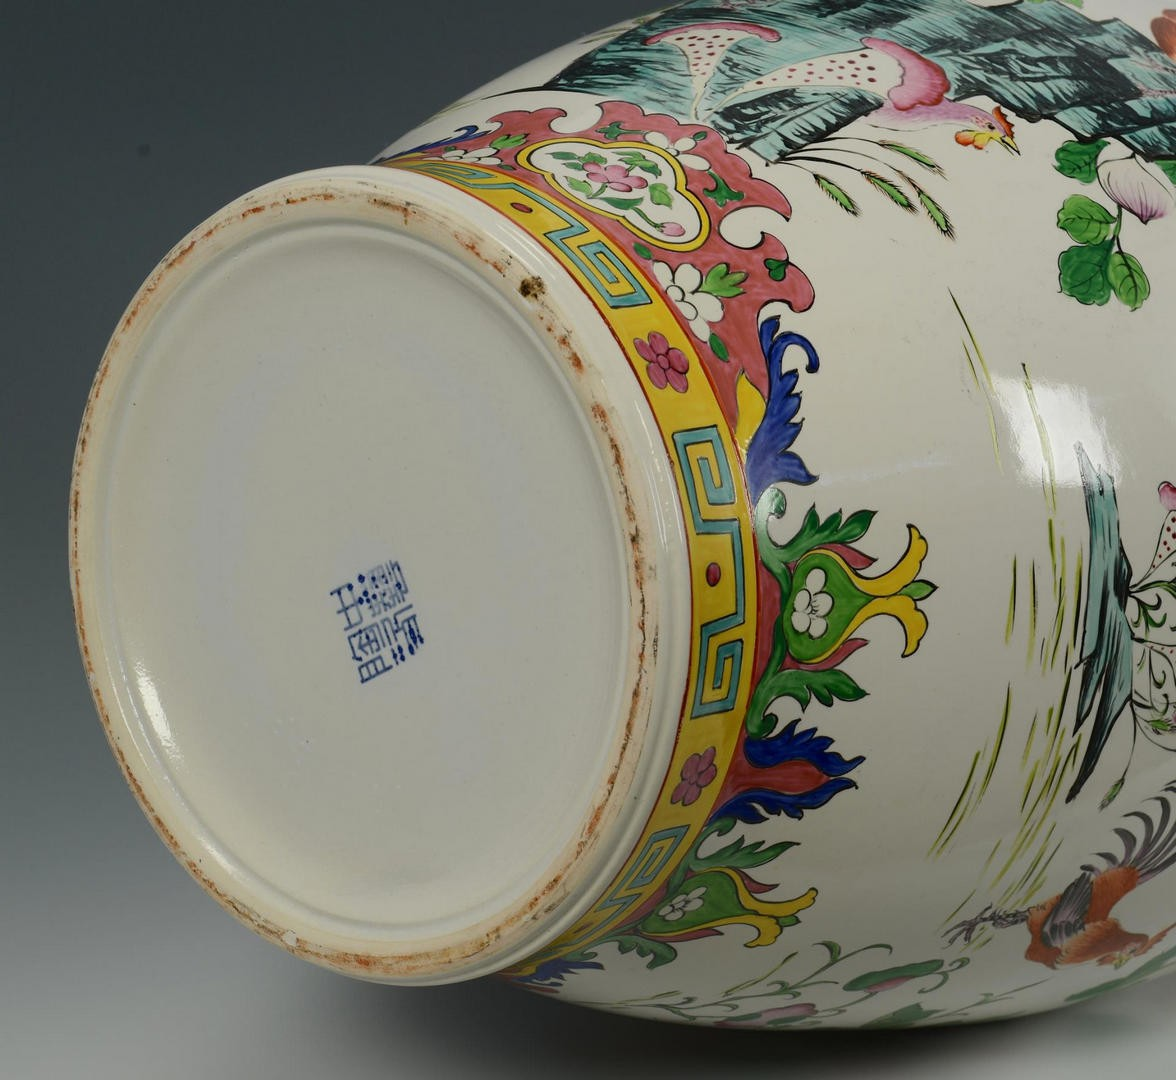 Lot 3832466: 2 Chinese Ceramic Decorative items